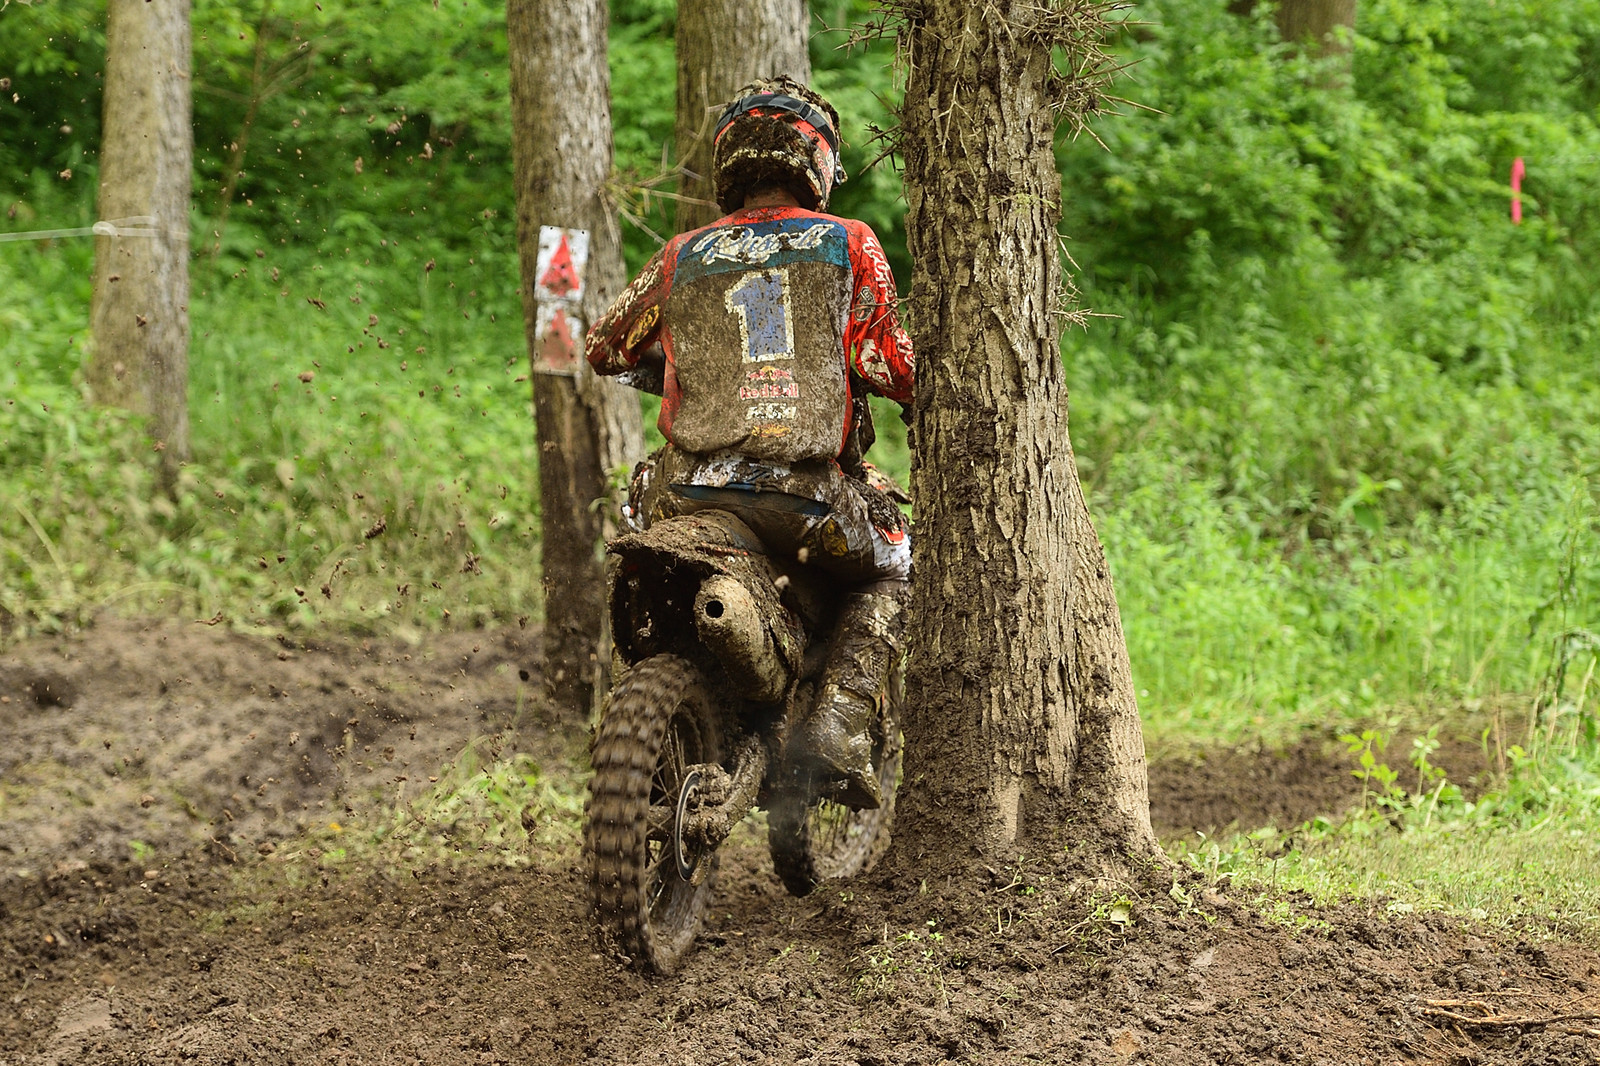 Kailub Russell - X-Factor GNCC - Motocross Pictures - Vital MX